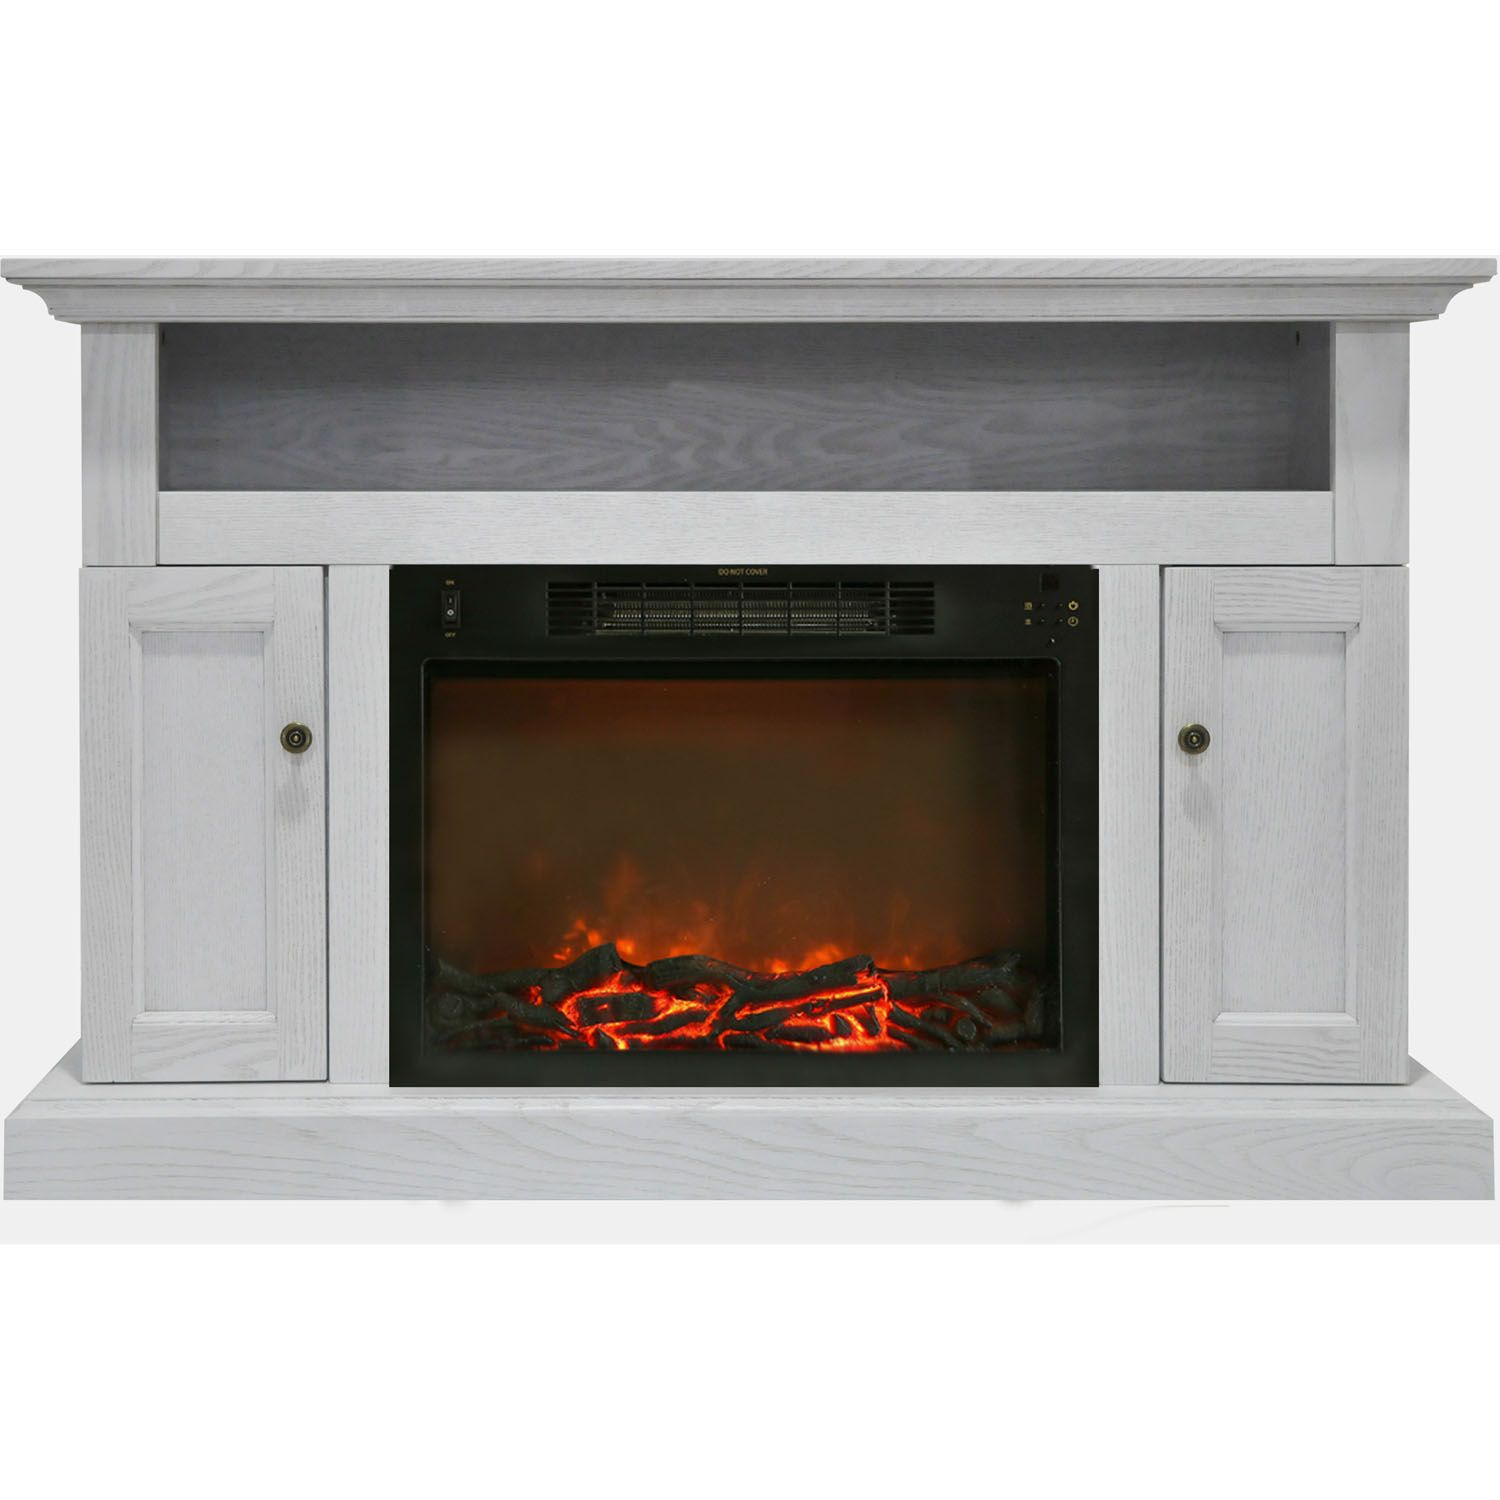 Cambridge Sorrento Fireplace Mantel With Electronic Fireplace Insert White Electric Fireplace Fireplace Tv Stand Fireplace Heater